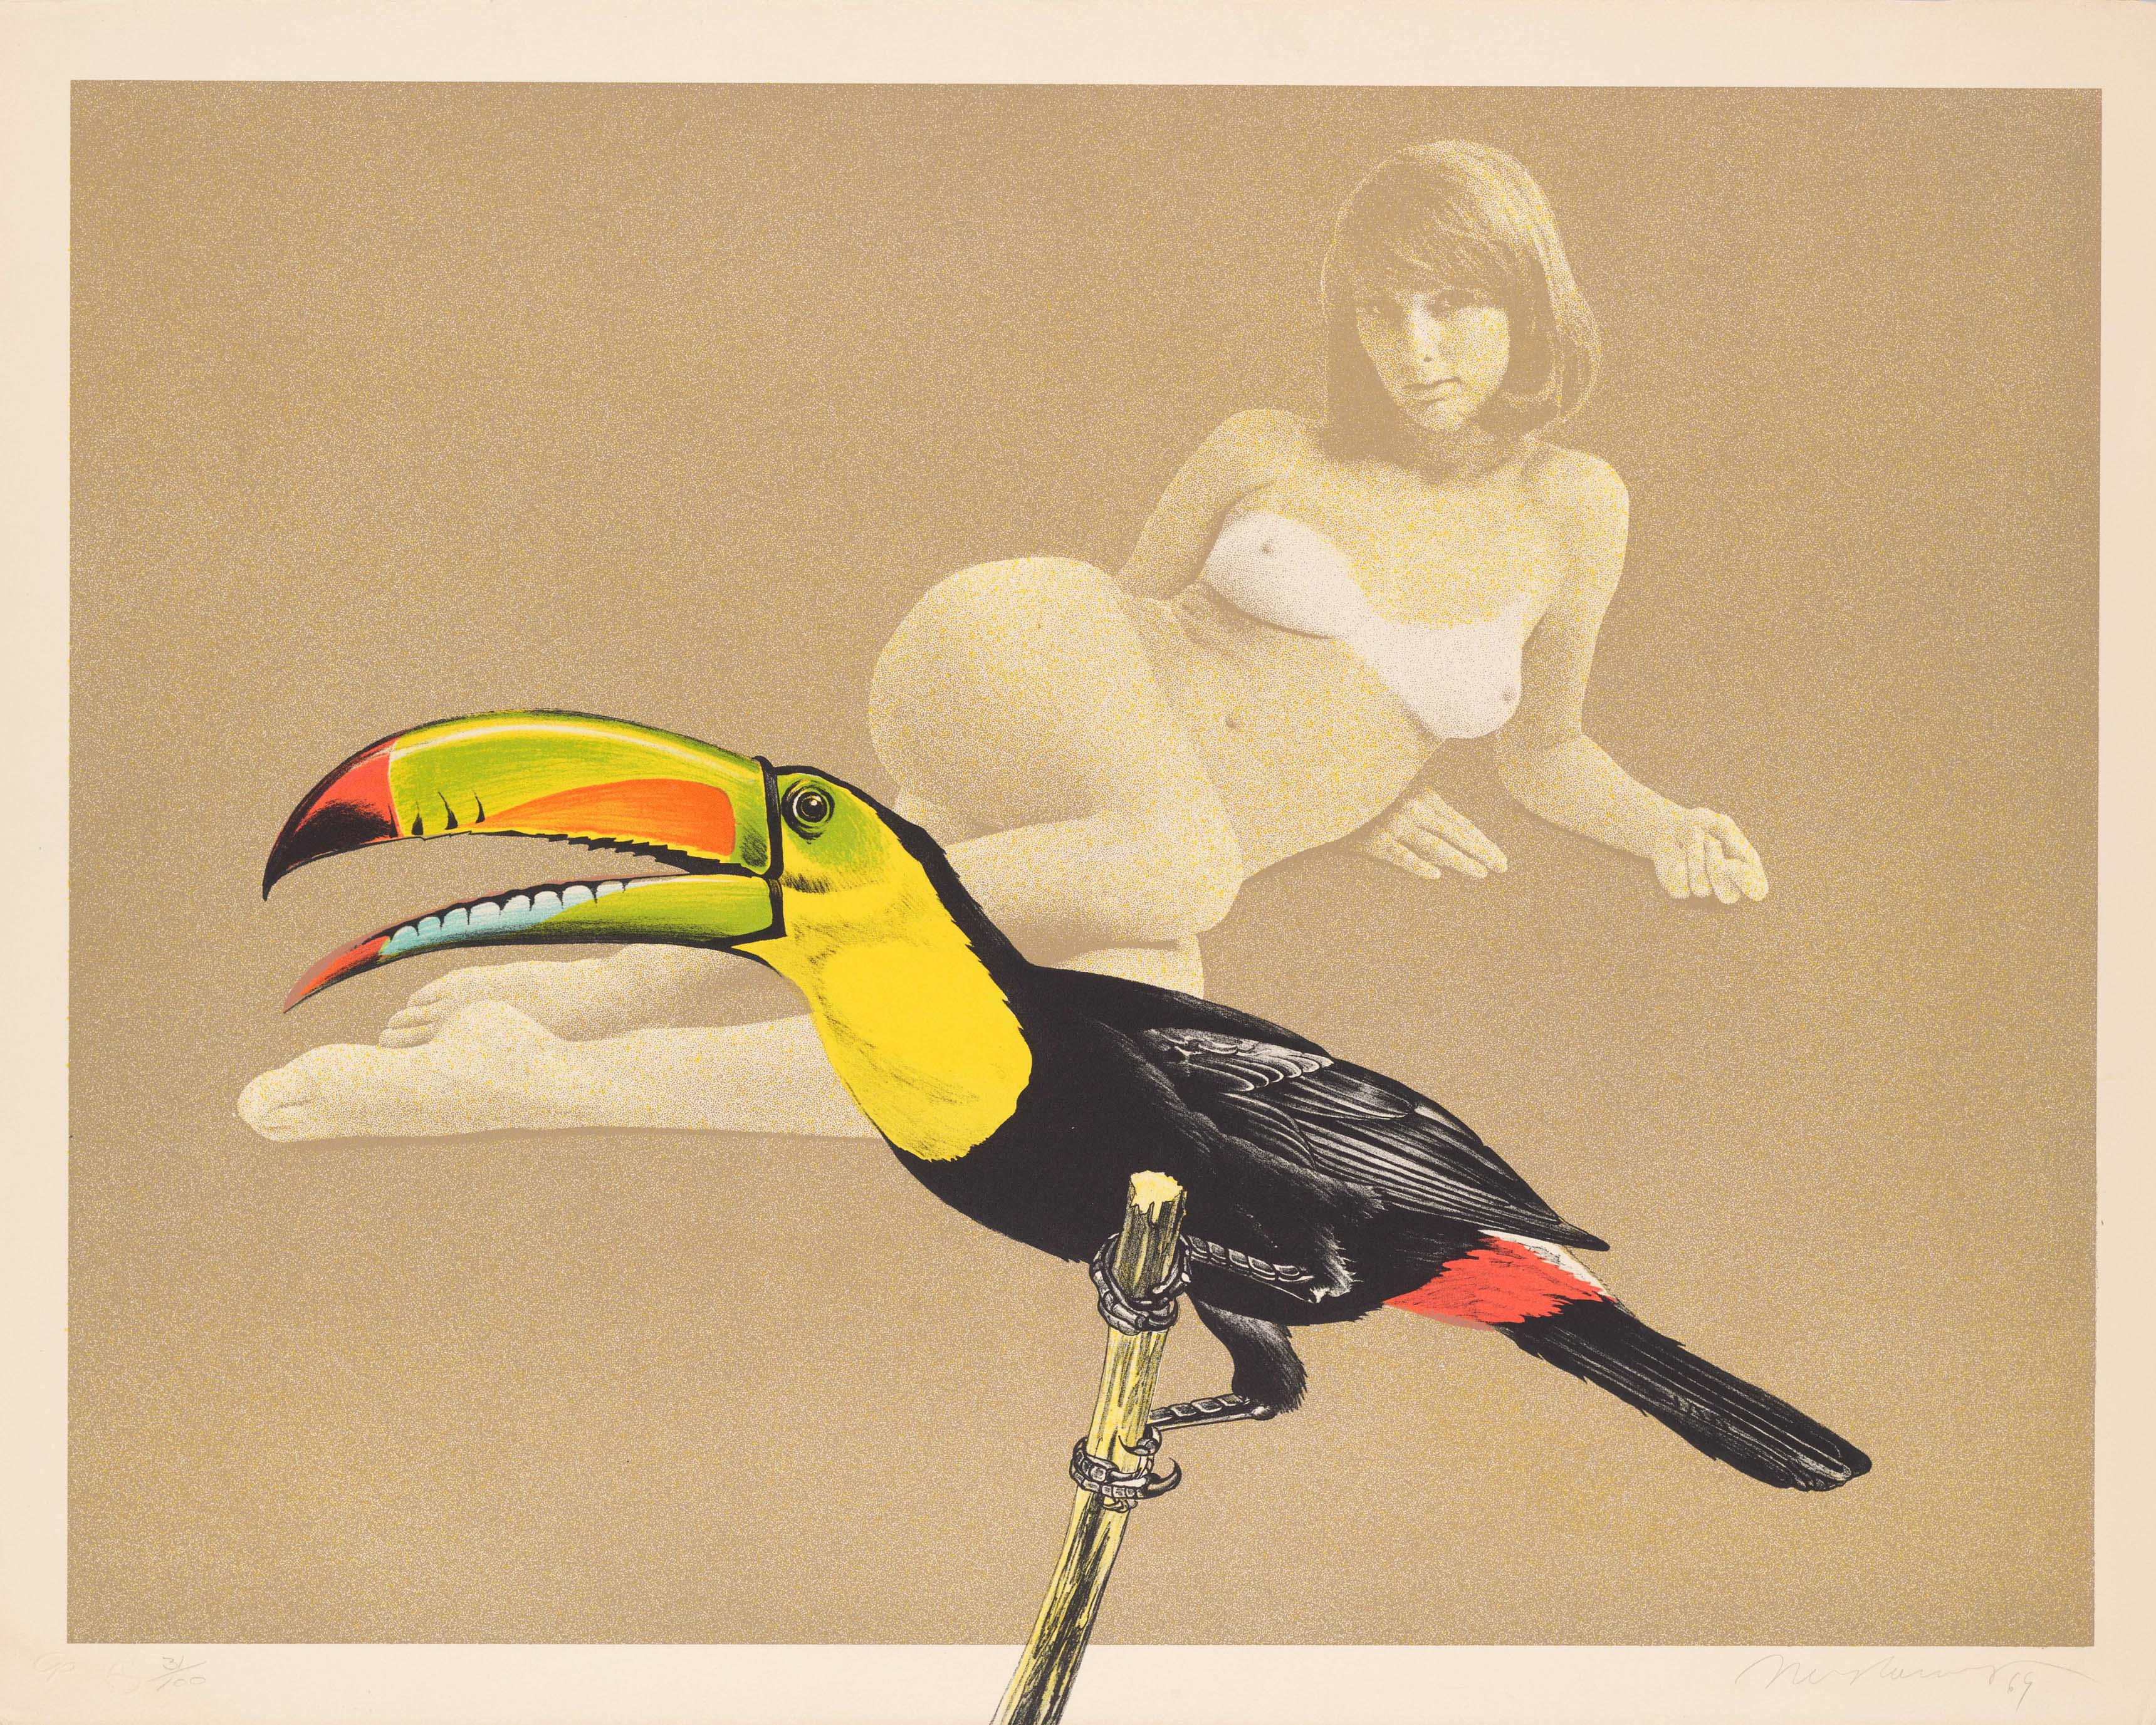 Mel Ramos, Toucan Better Than One, 1969, du portfolio Léda et le cygne, 1969, épreuve photographique et lithographie, 56,7 x 71,3 cm, San Francisco, don de Ruth and Richard Shack © Adagp, Paris, 2017